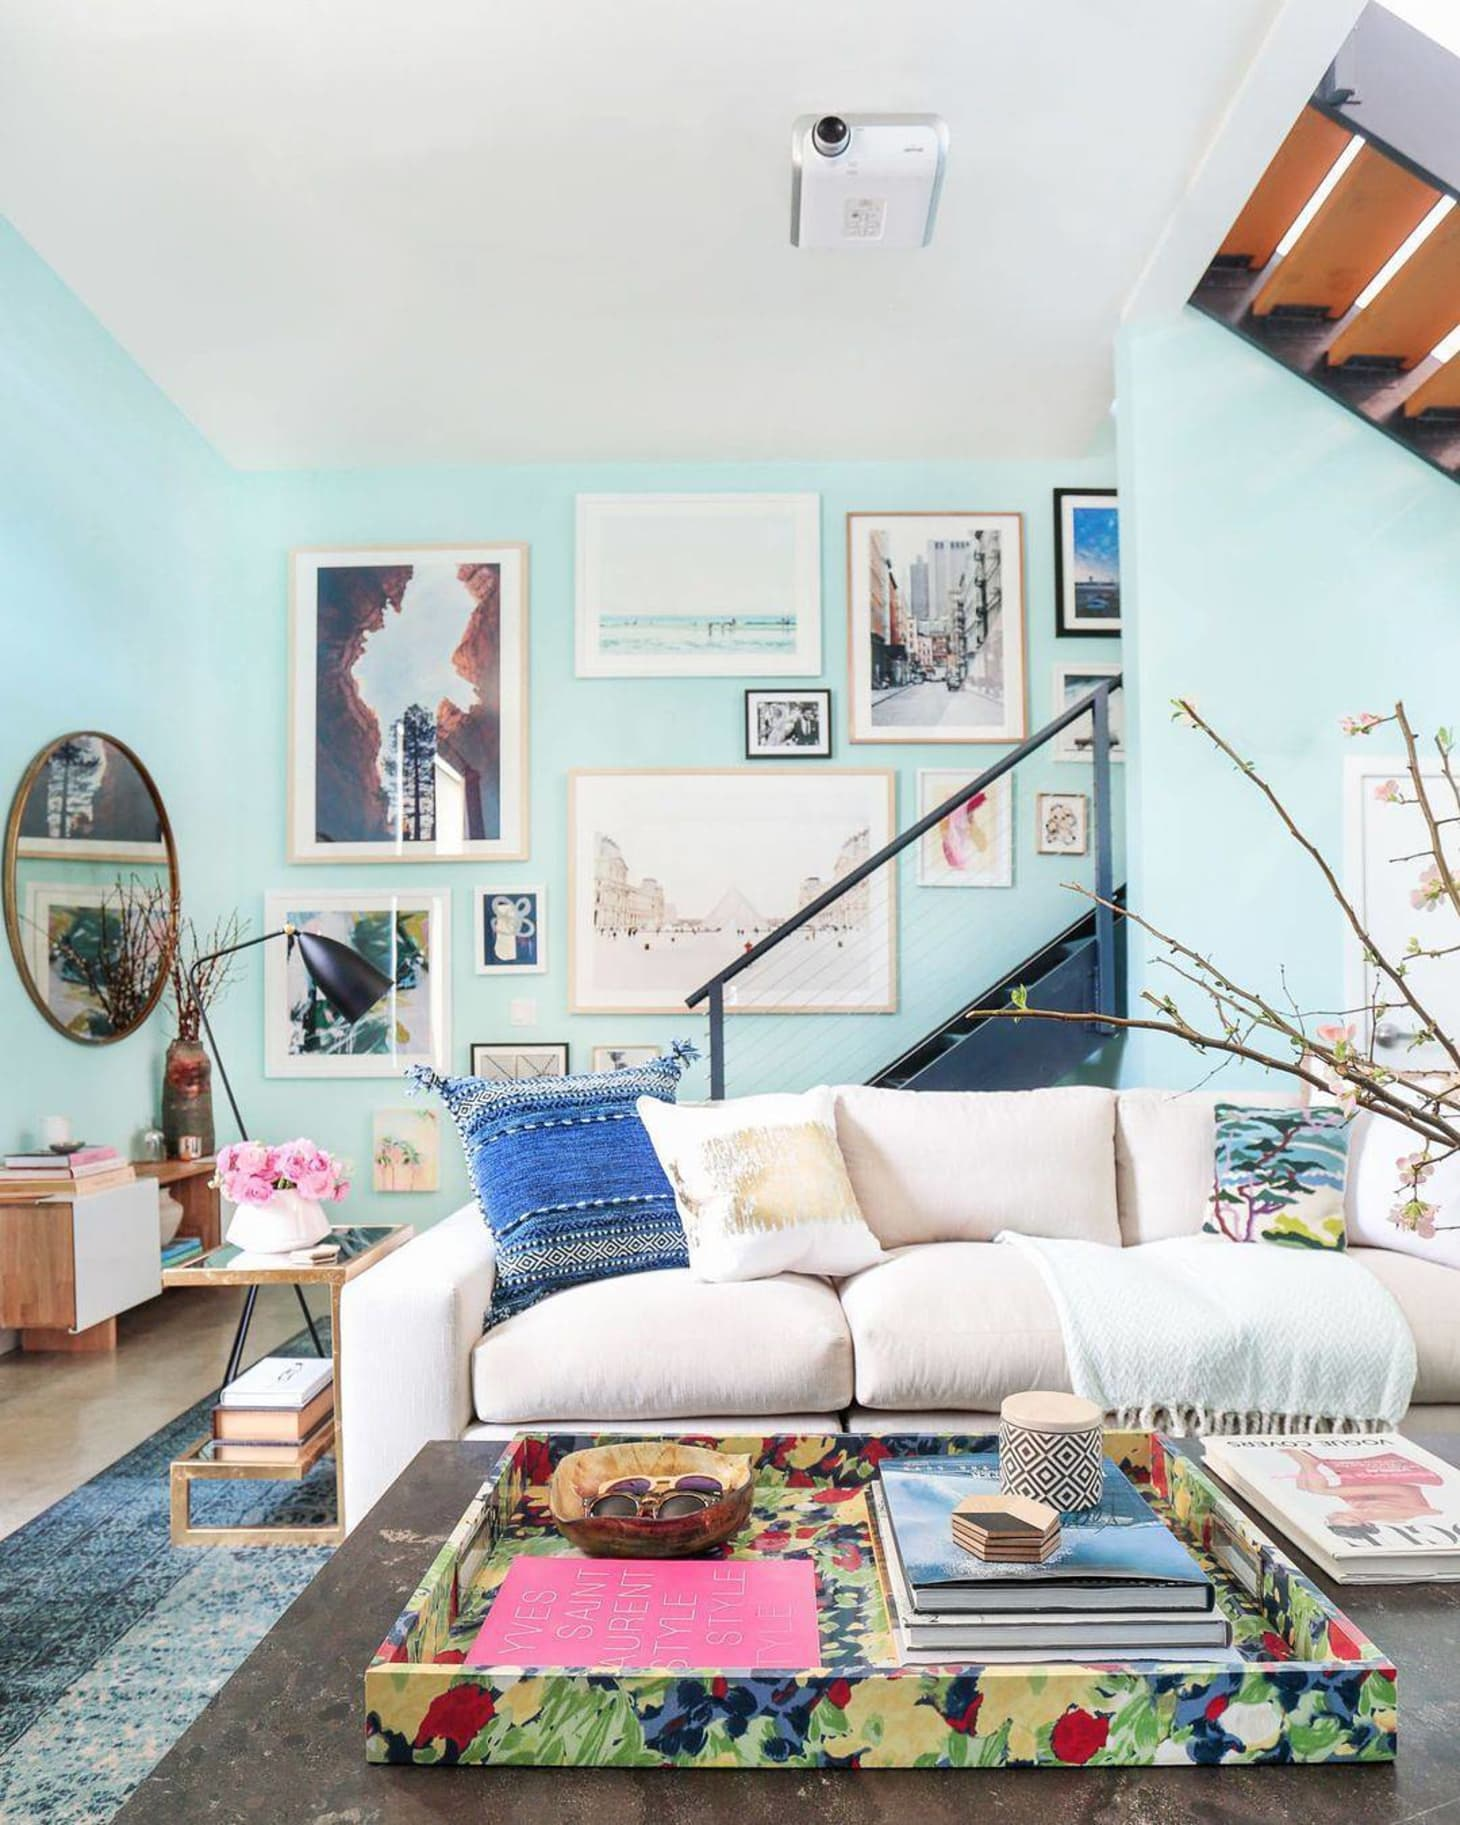 2017 S Most Popular Colors For Interiors According To Instagram